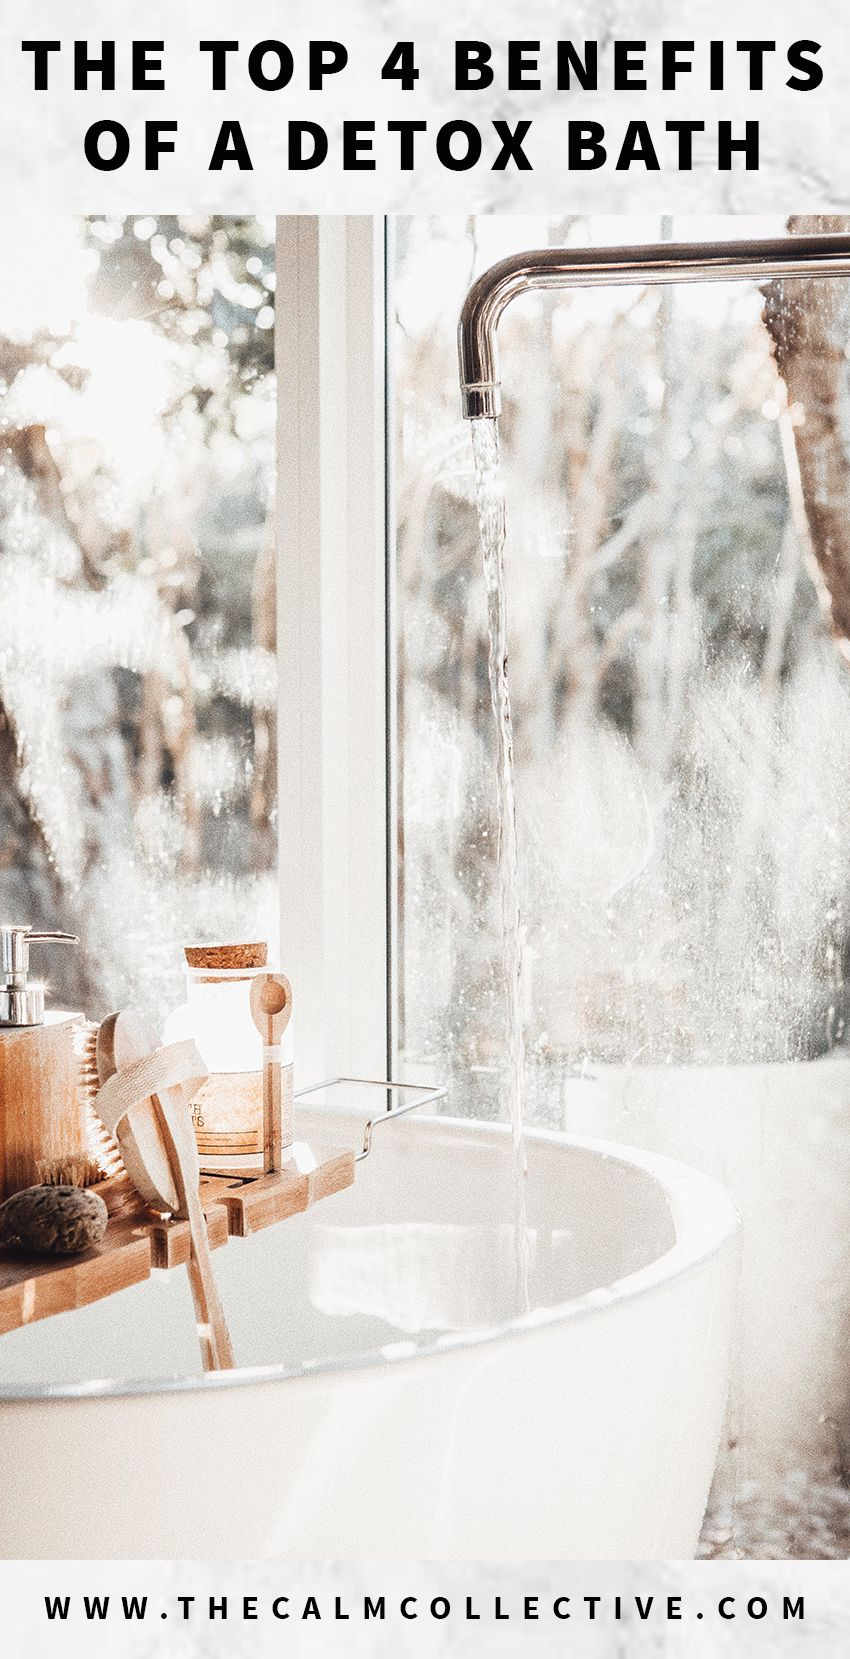 4 Benefits Of A Detox Bath Why You Should Implement Epsom Salts Into Your Weekly Bath Ritual Detox Bath Detox Bath Benefits Bath Benefits